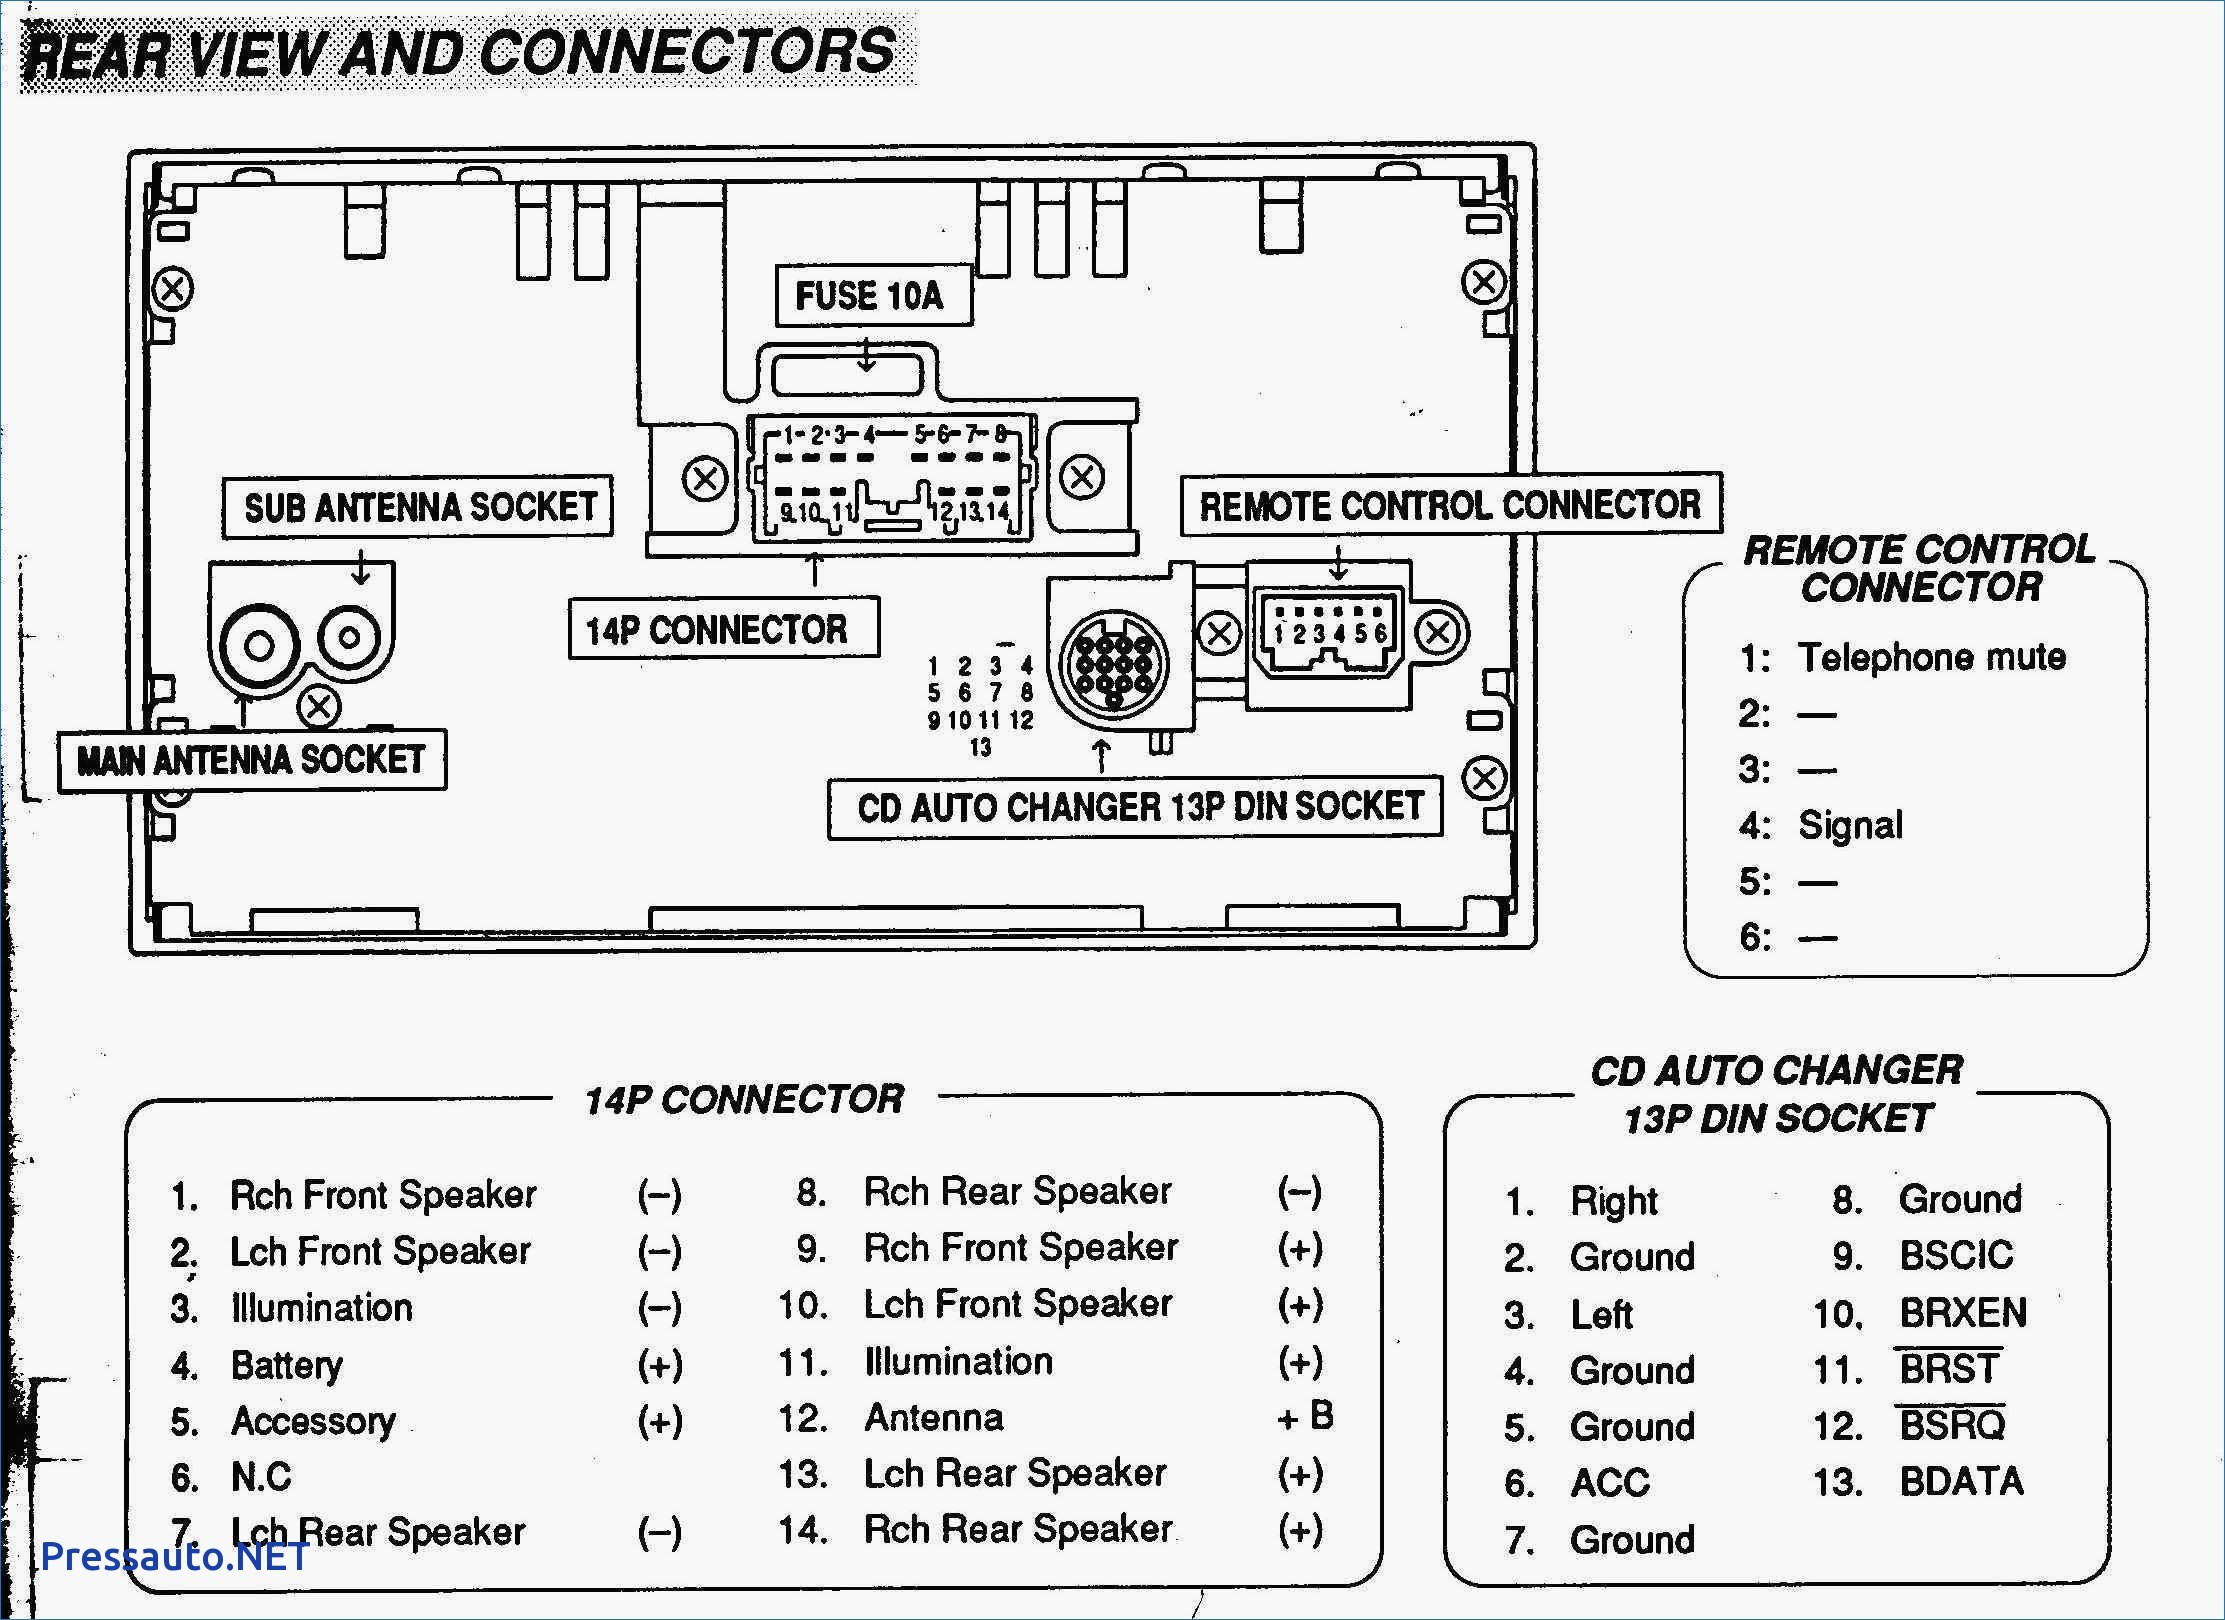 1999 Jetta Engine Diagram 03 Jetta 2 0 Engine Diagram Another Blog About Wiring Diagram • Of 1999 Jetta Engine Diagram